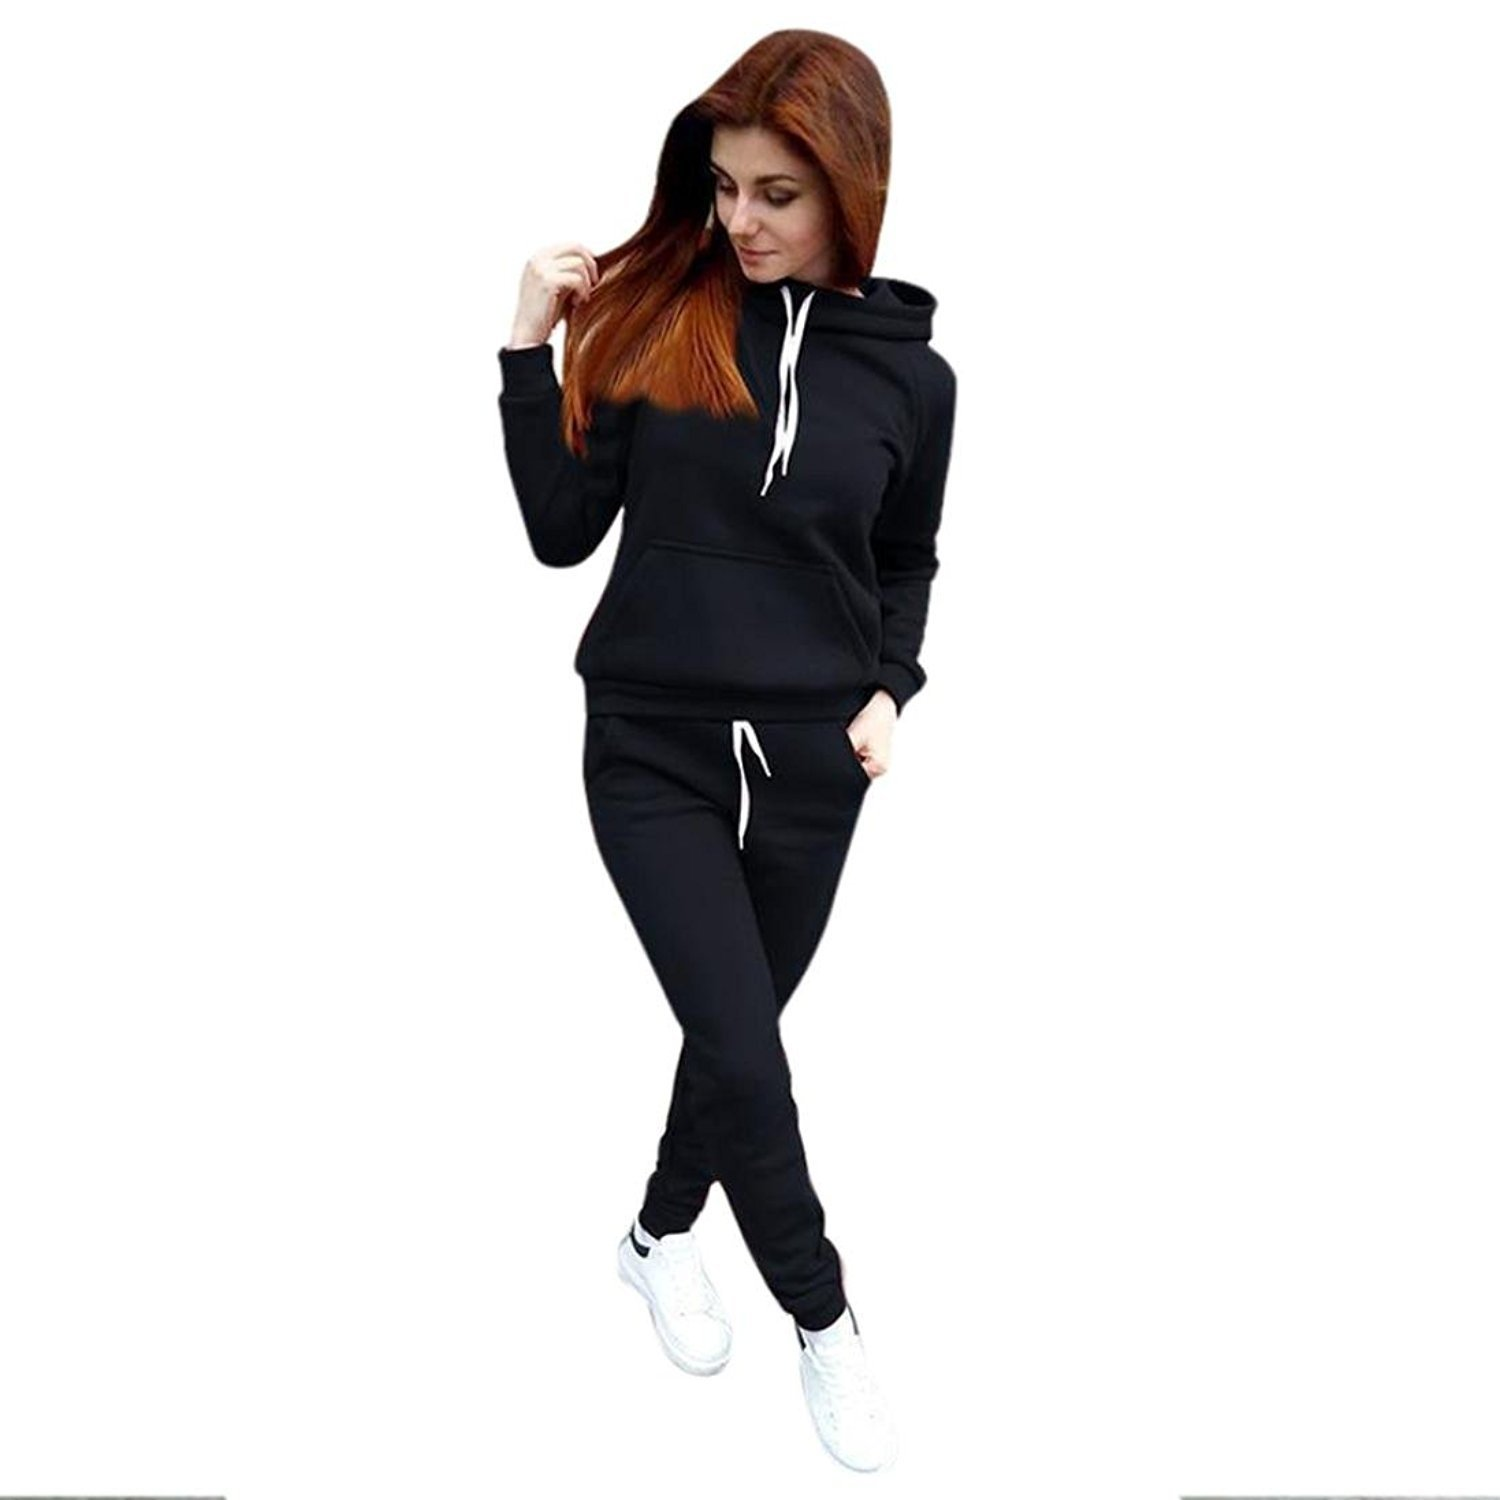 Challyhope Tracksuit, Women Casual Sweatshirt Hoodie + Sweatpants Two-Pieces Outfit (Black, M)